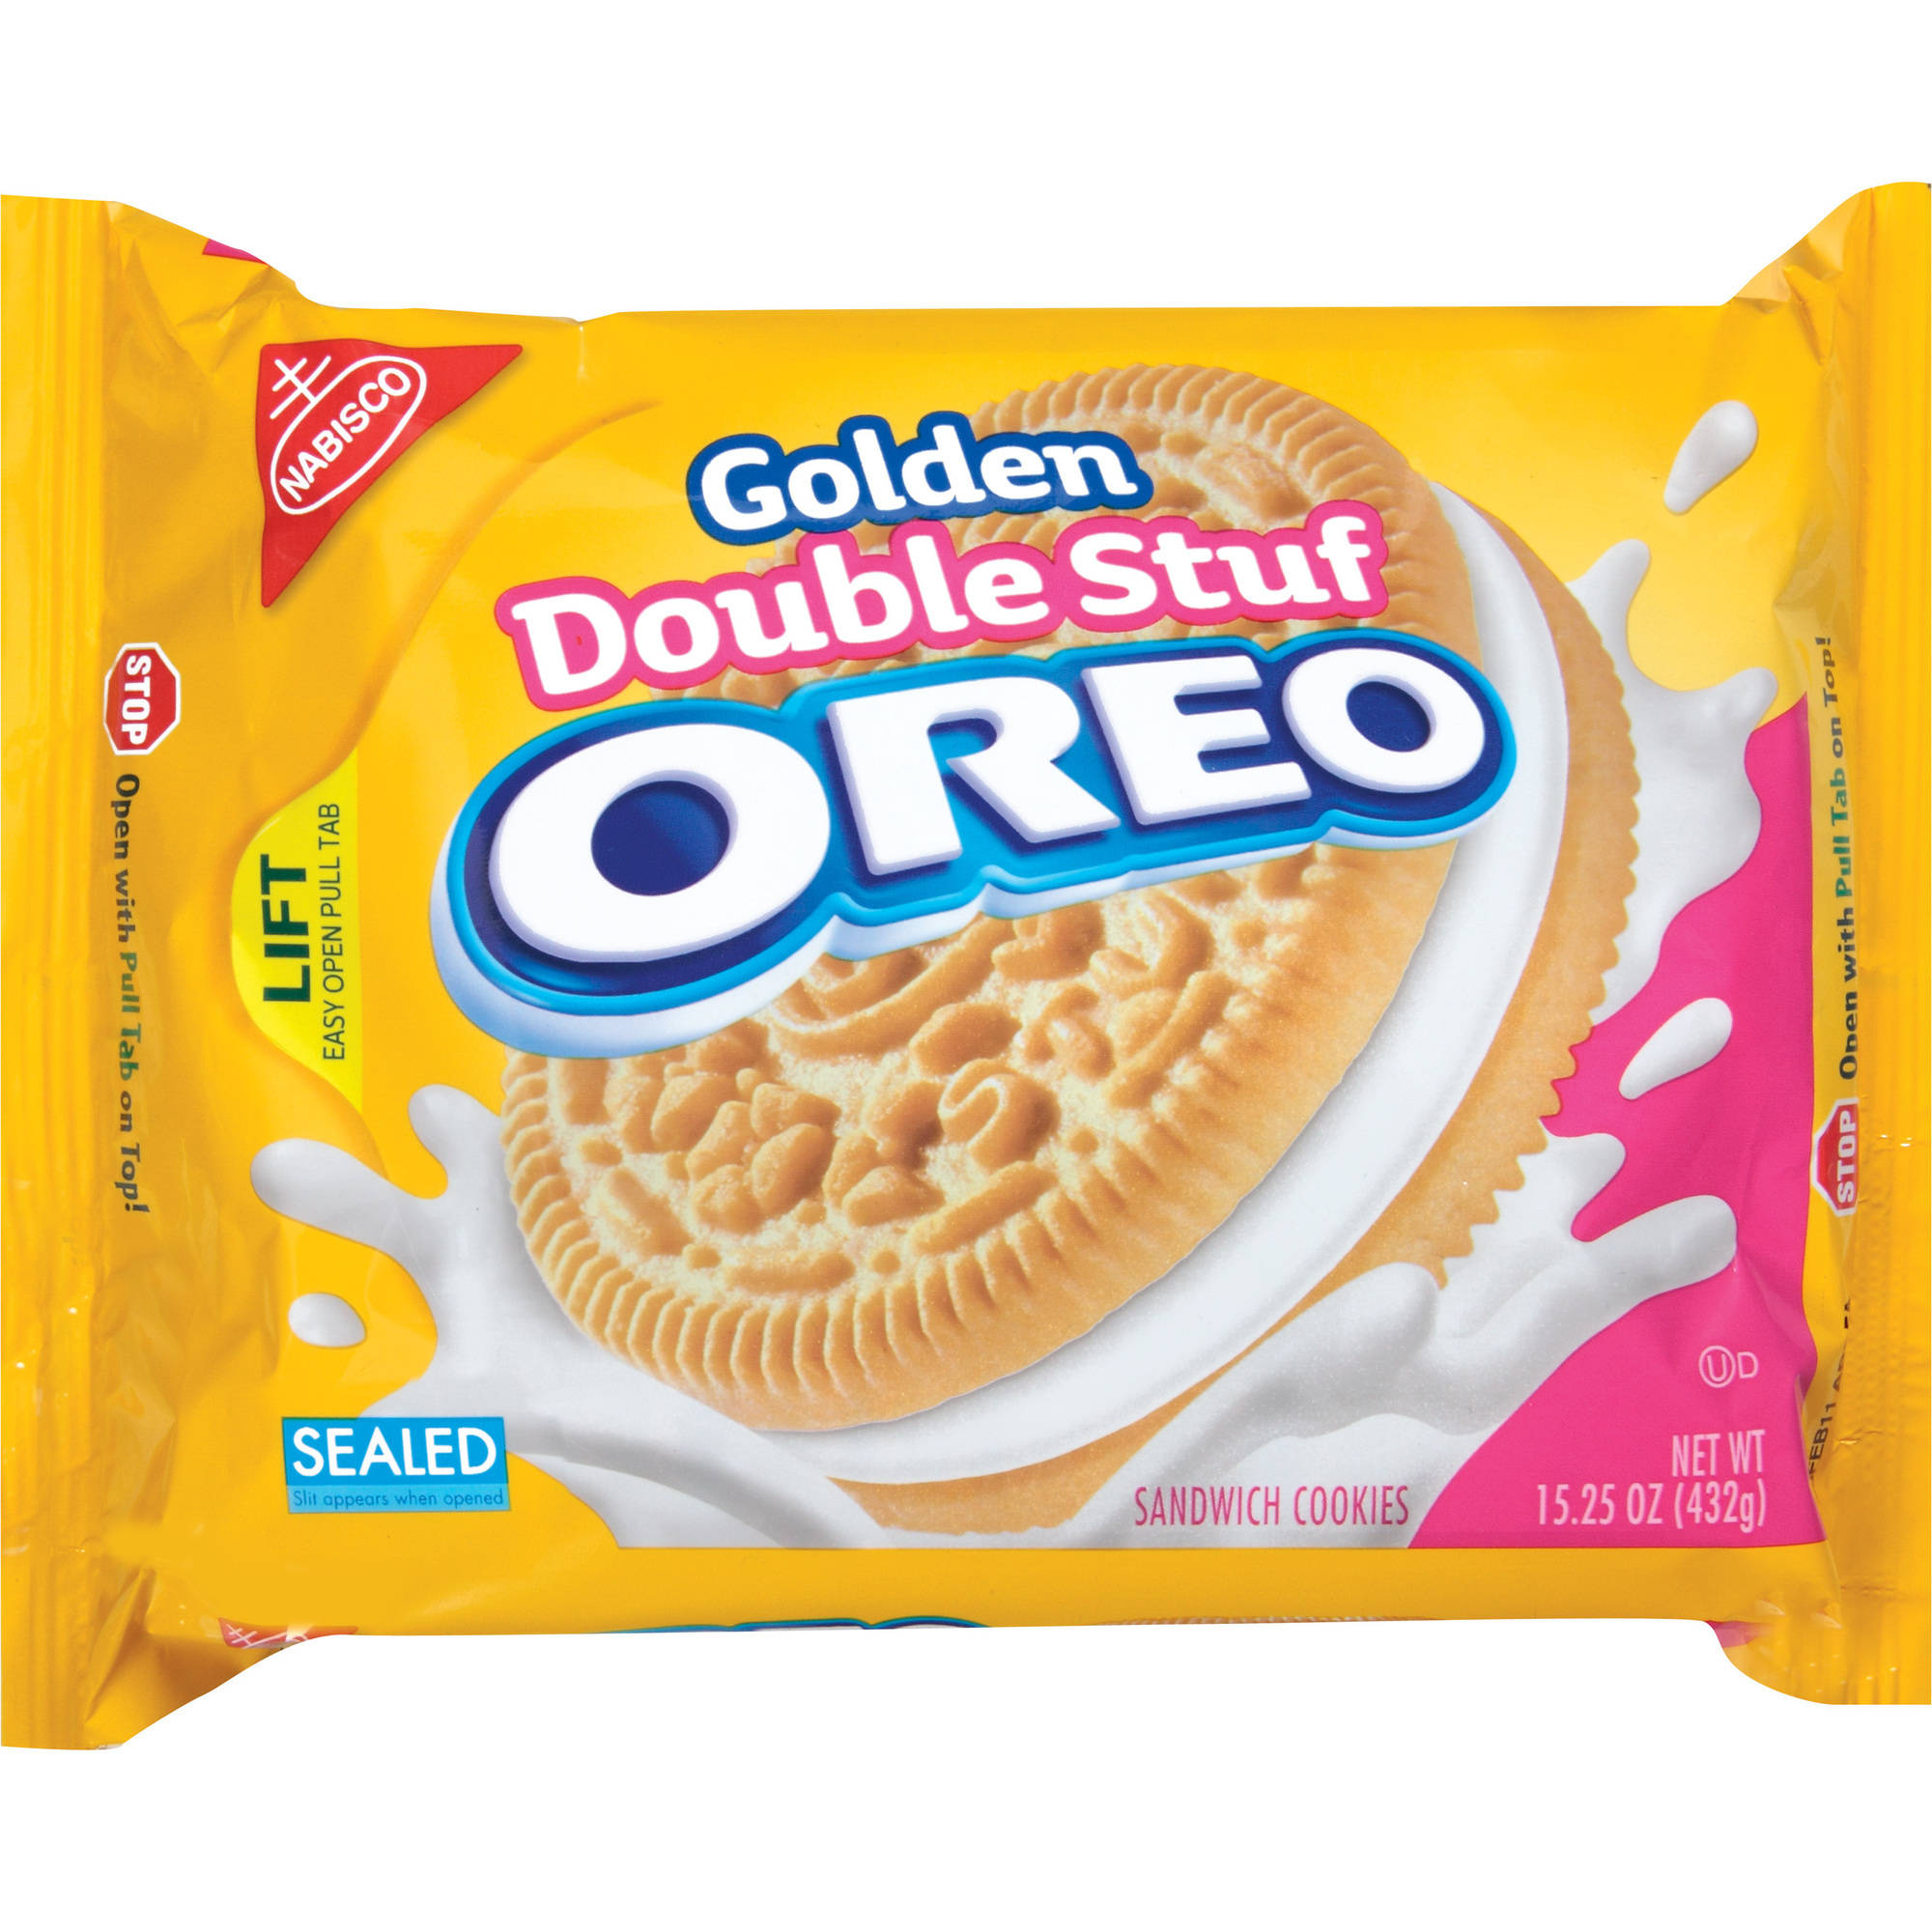 Nabisco Oreo Double Stuf Golden Sandwich Cookies, 15.25 oz